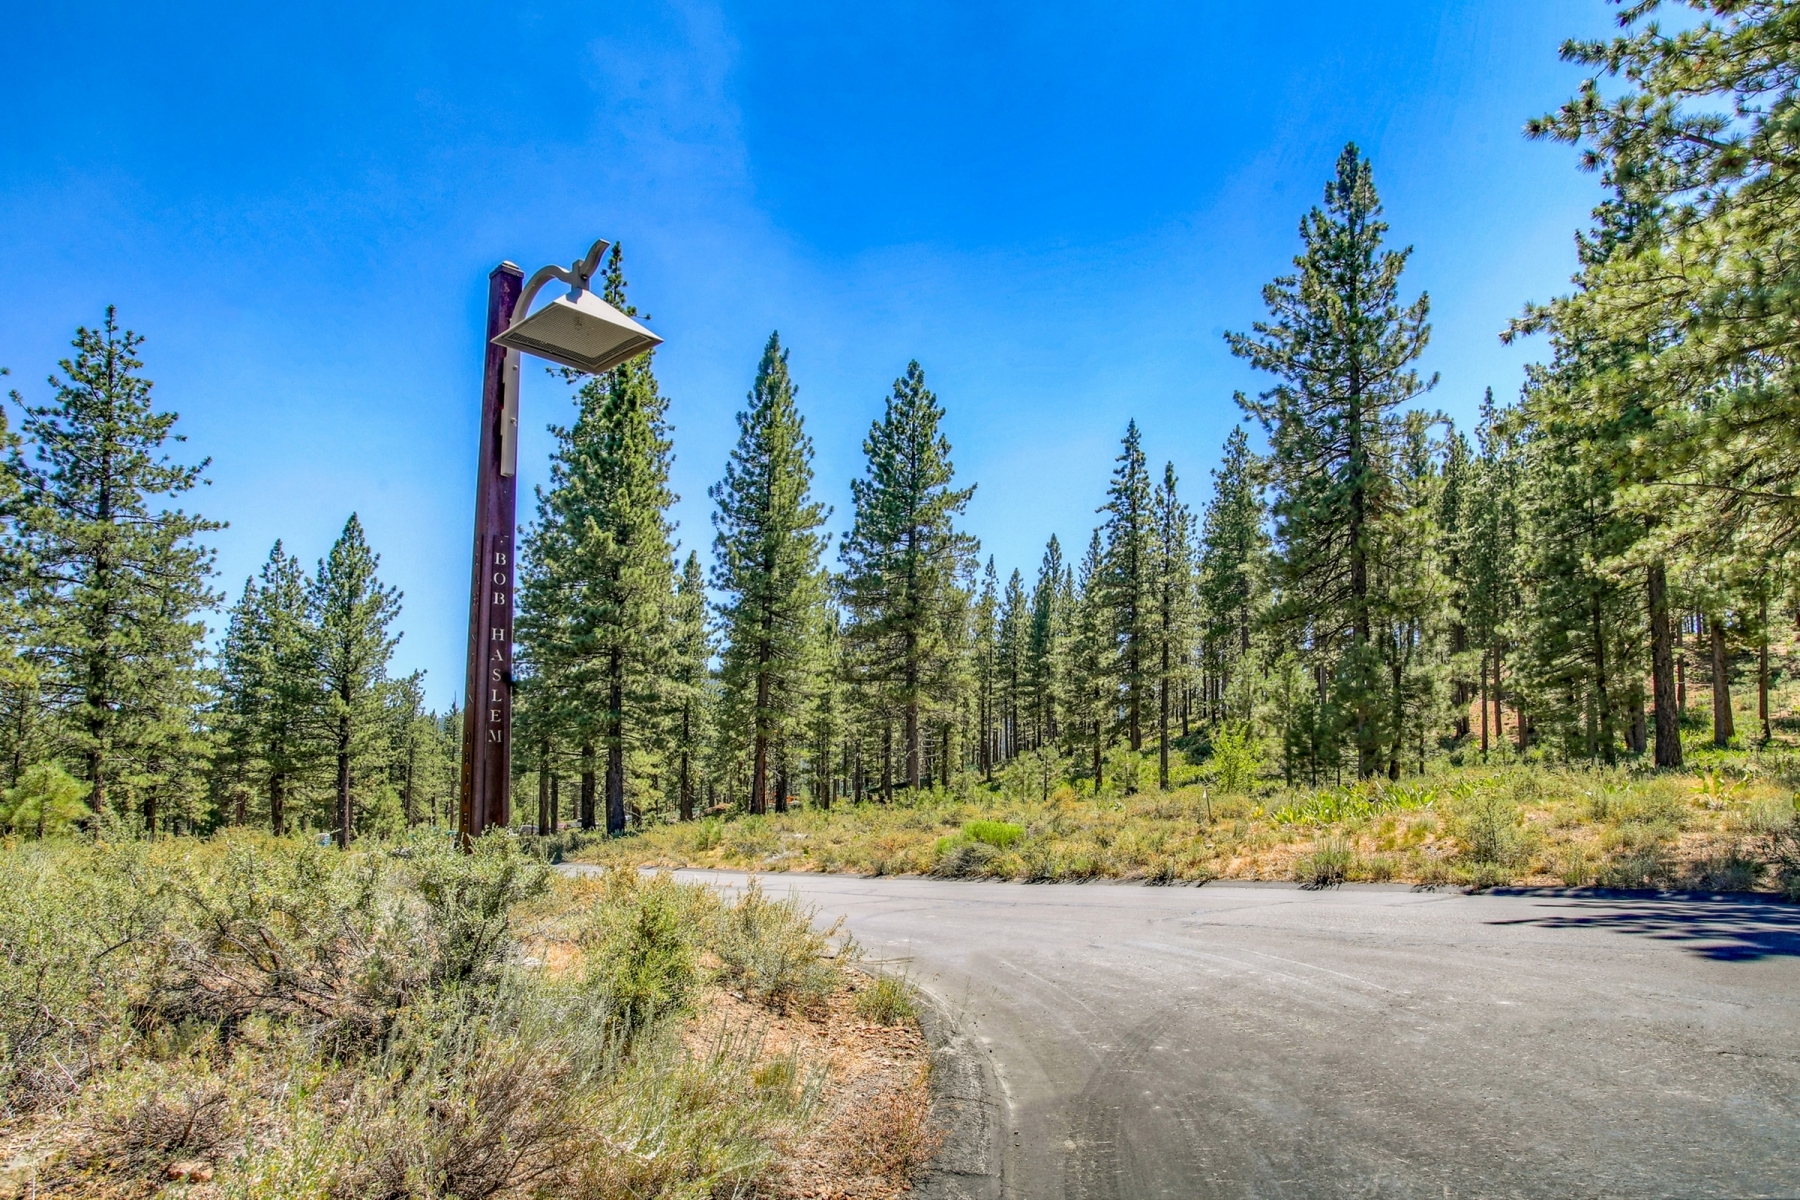 Additional photo for property listing at 7520 Lahontan Drive, Truckee, CA 7520 Lahontan Drive Truckee, California 96161 Estados Unidos